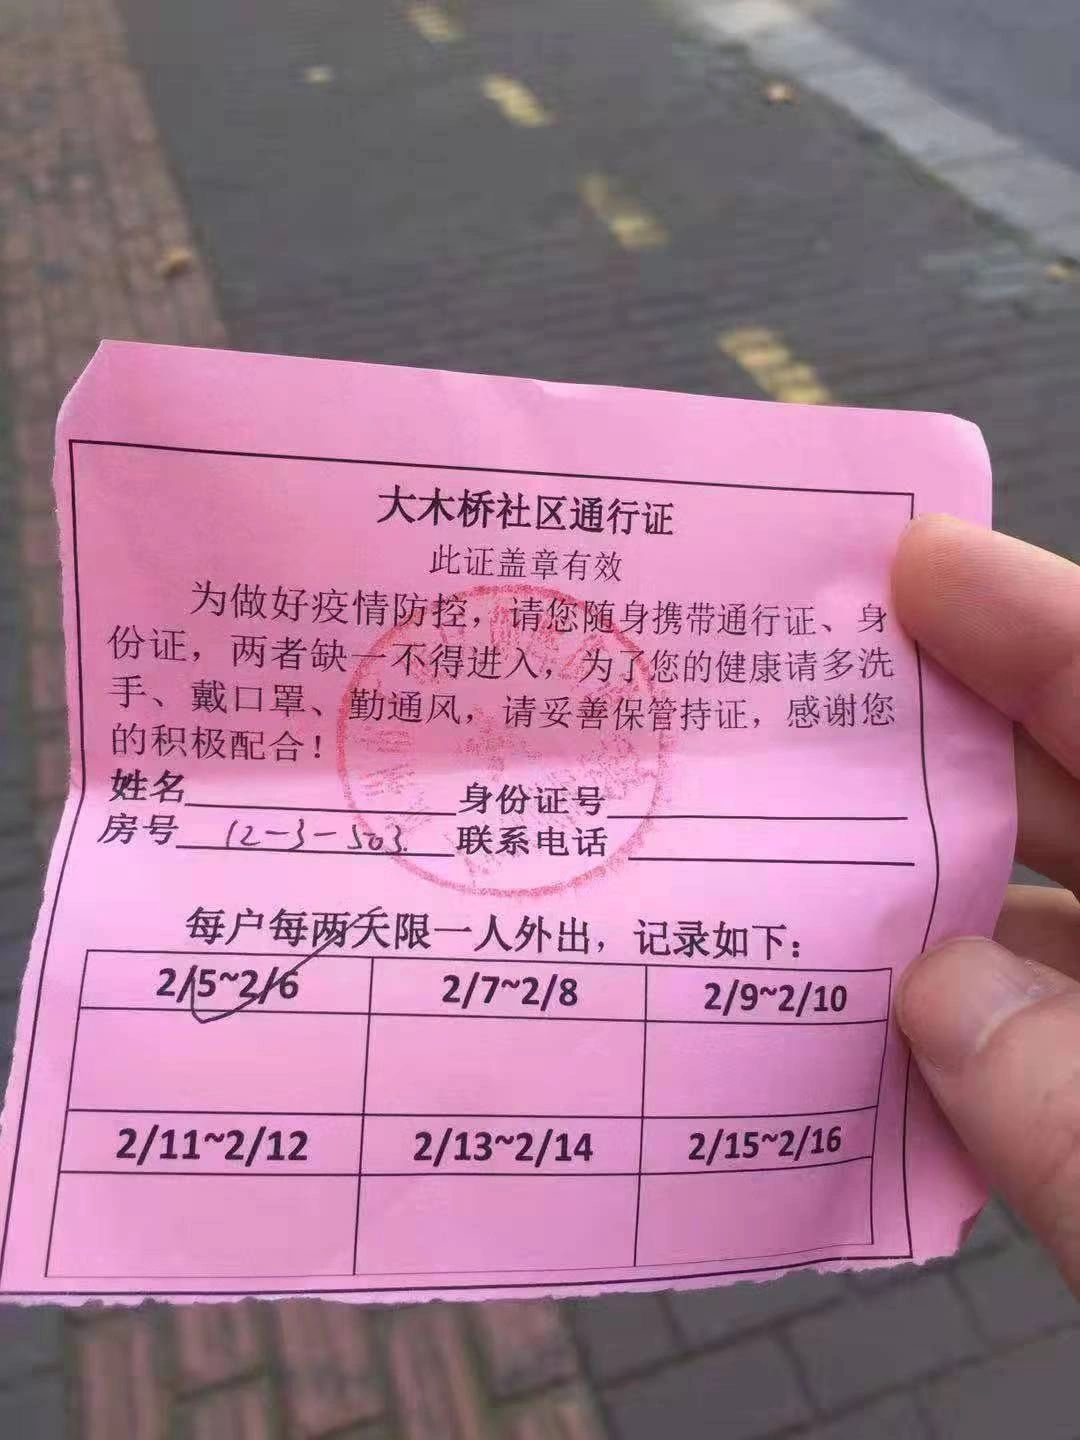 A pass for outings for Chinese citizens that allows them to go out once every two days.